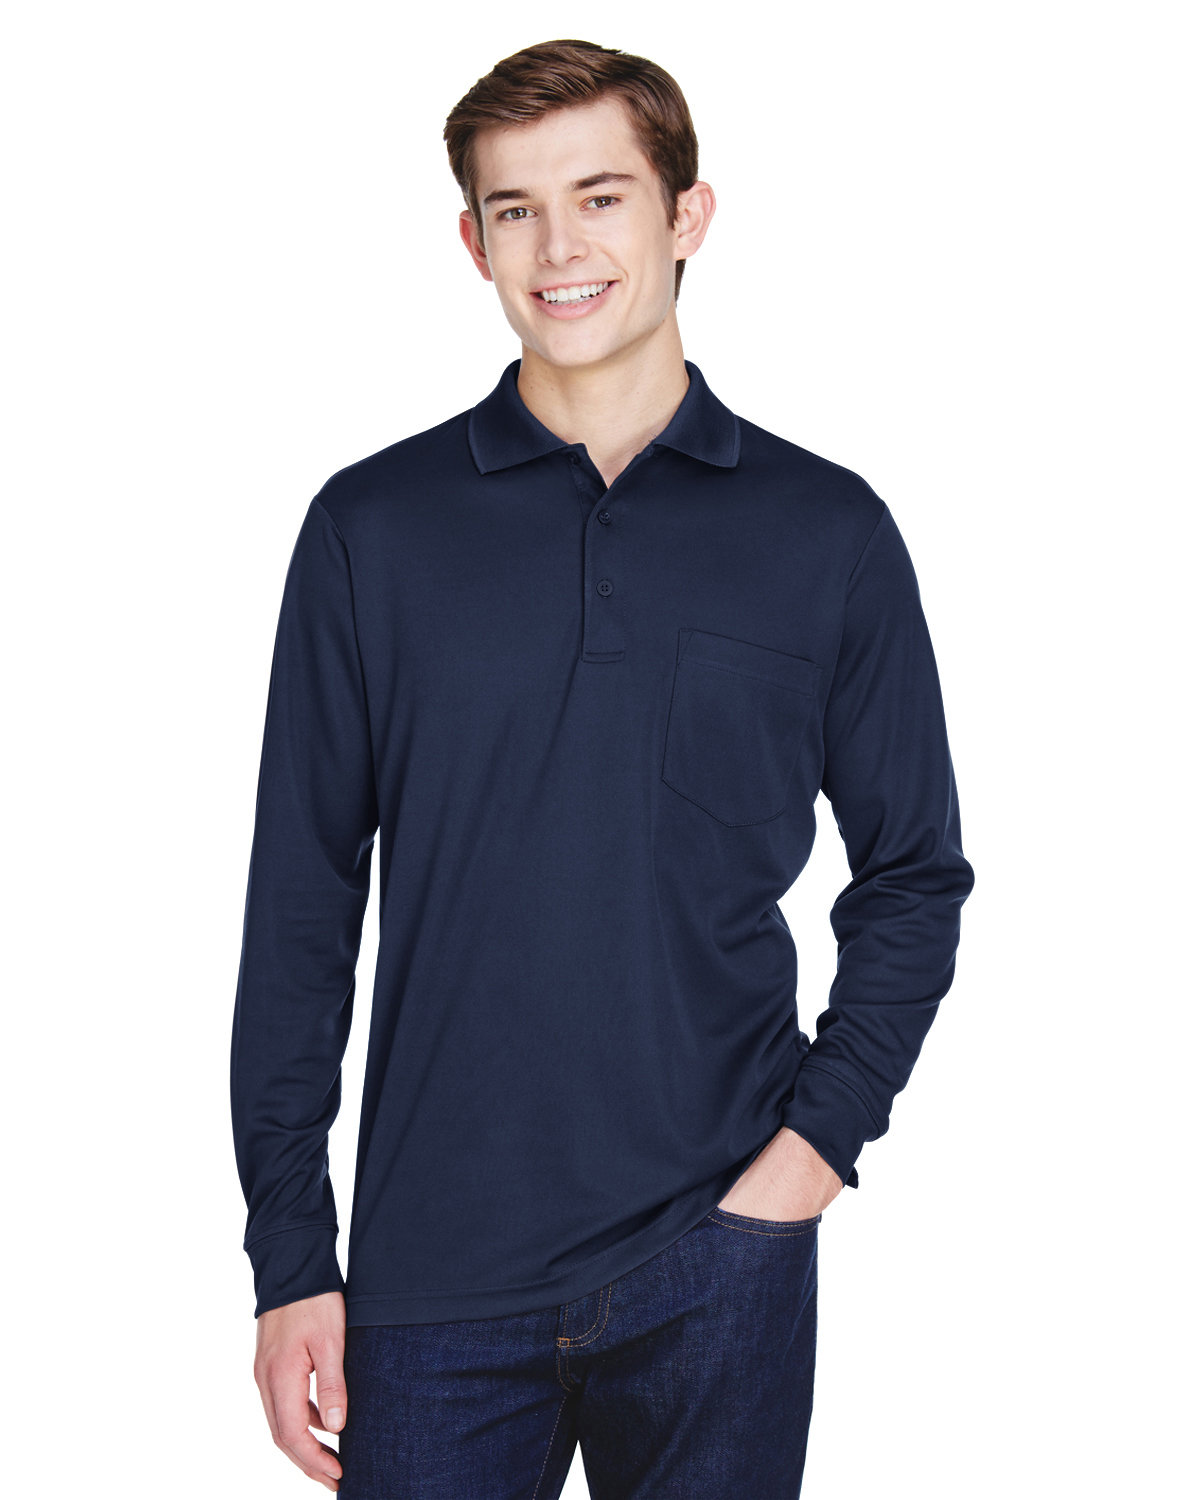 Core 365 Adult Pinnacle Performance Long-Sleeve Piqué Polo with Pocket CLASSIC NAVY